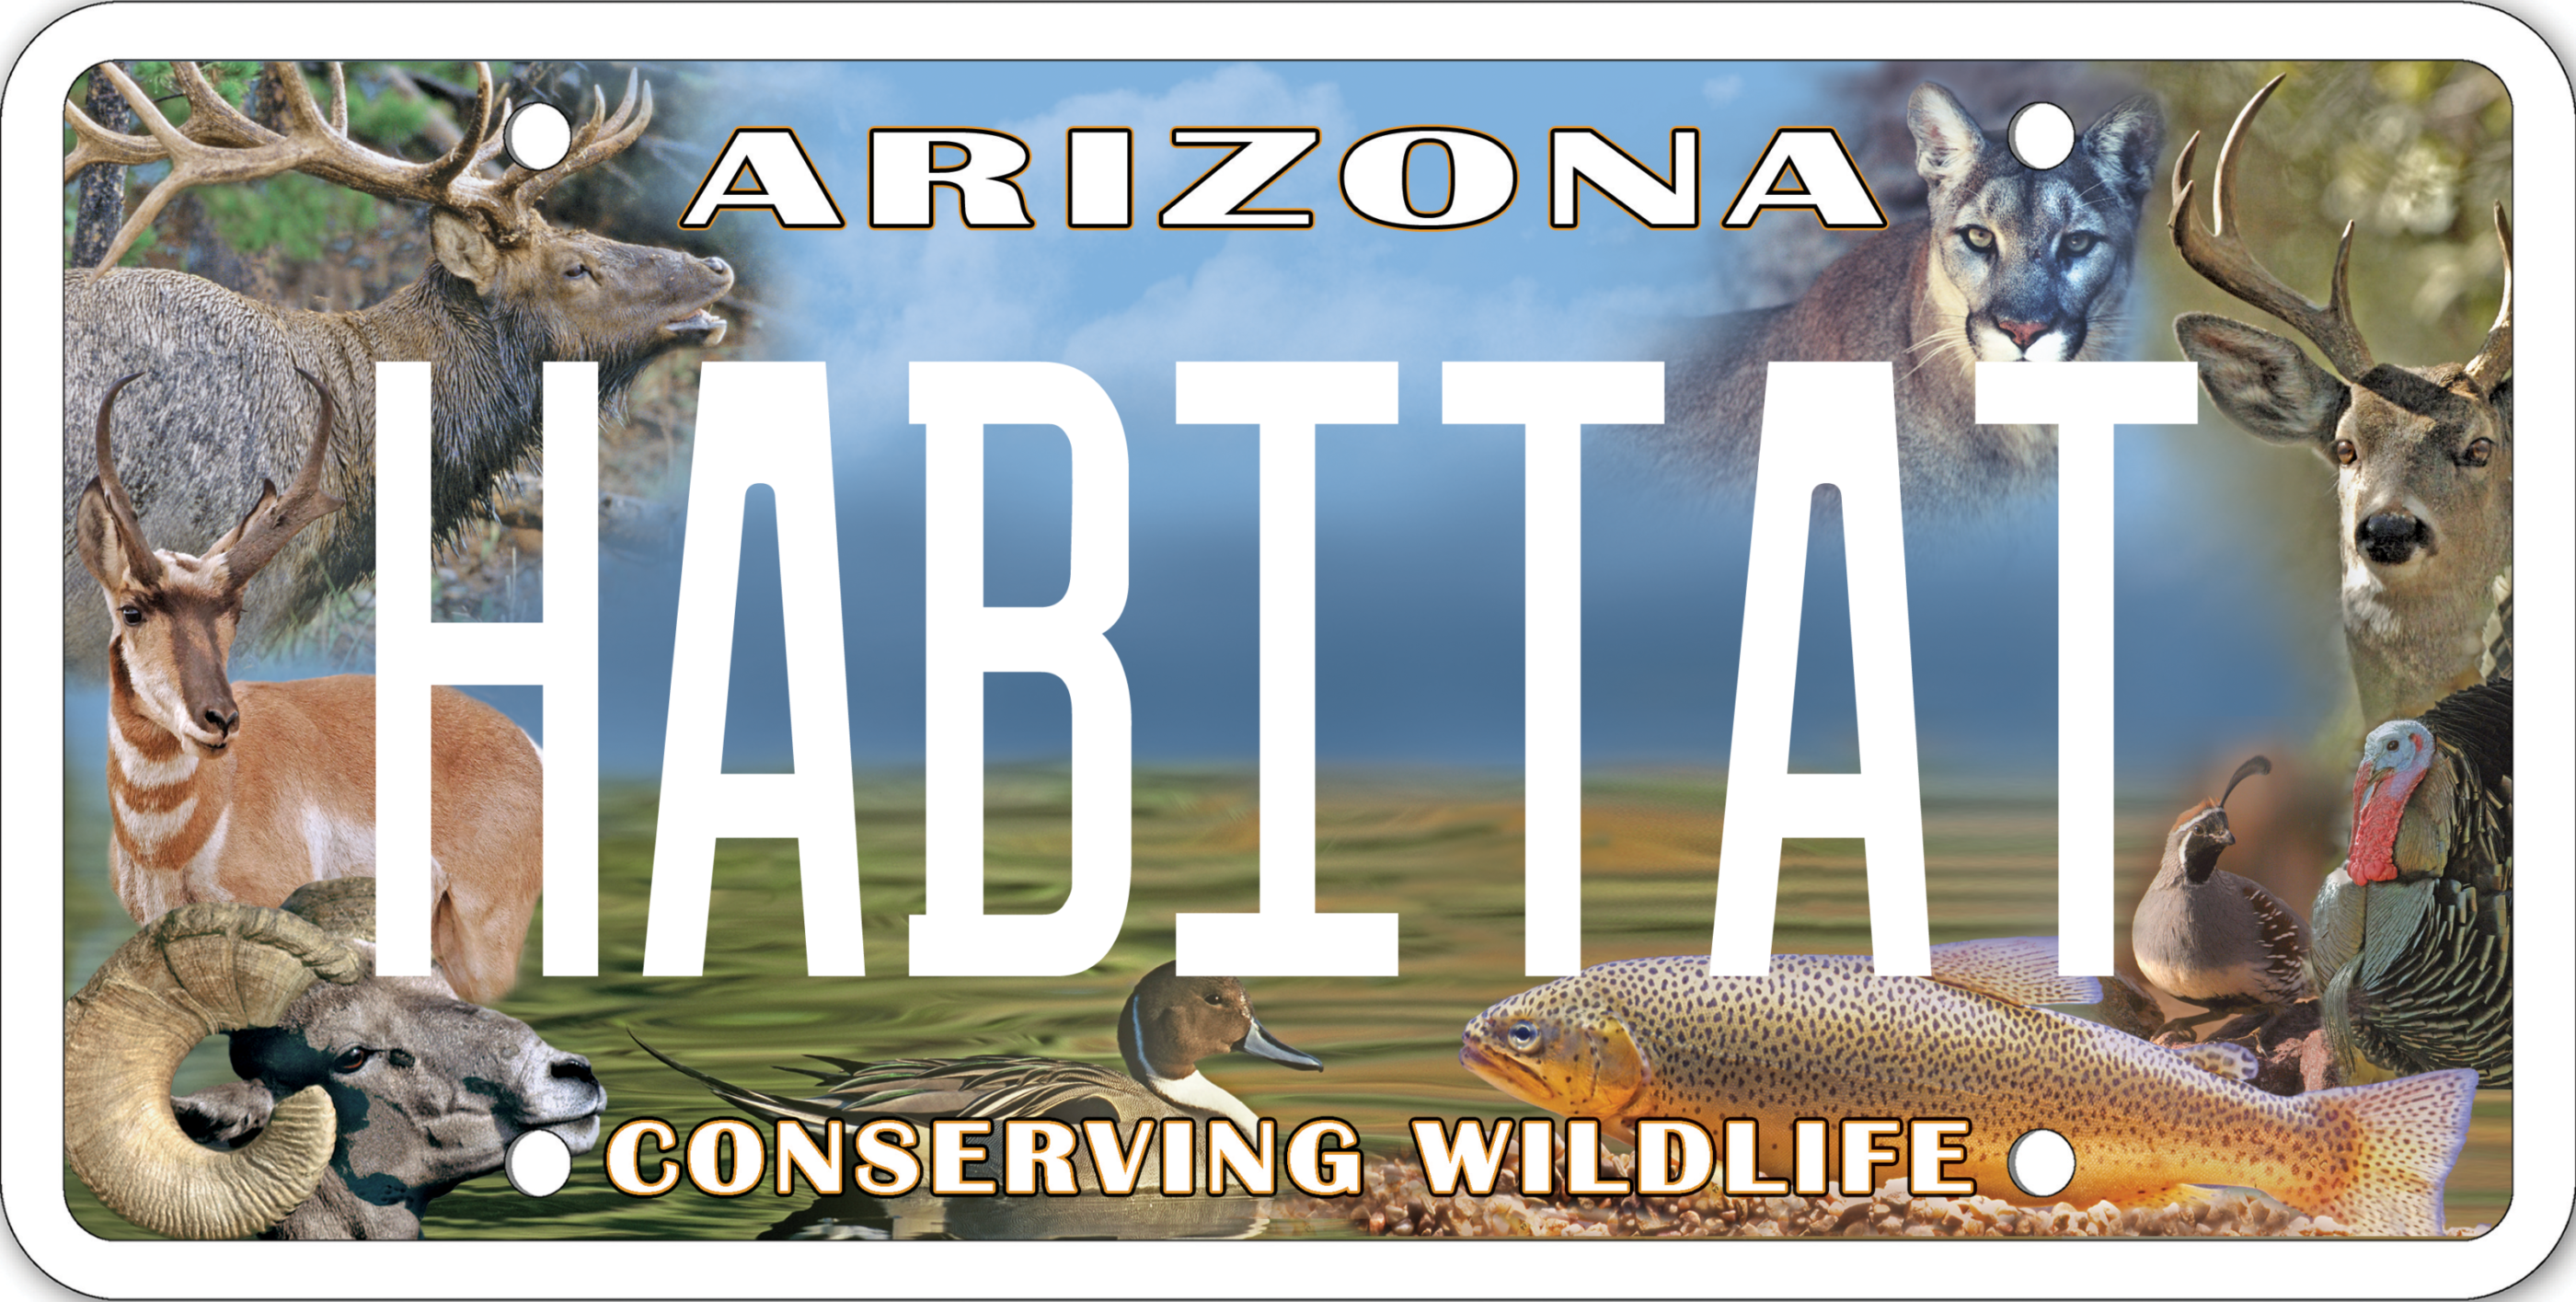 AZSFWC Conservation License Plate Image